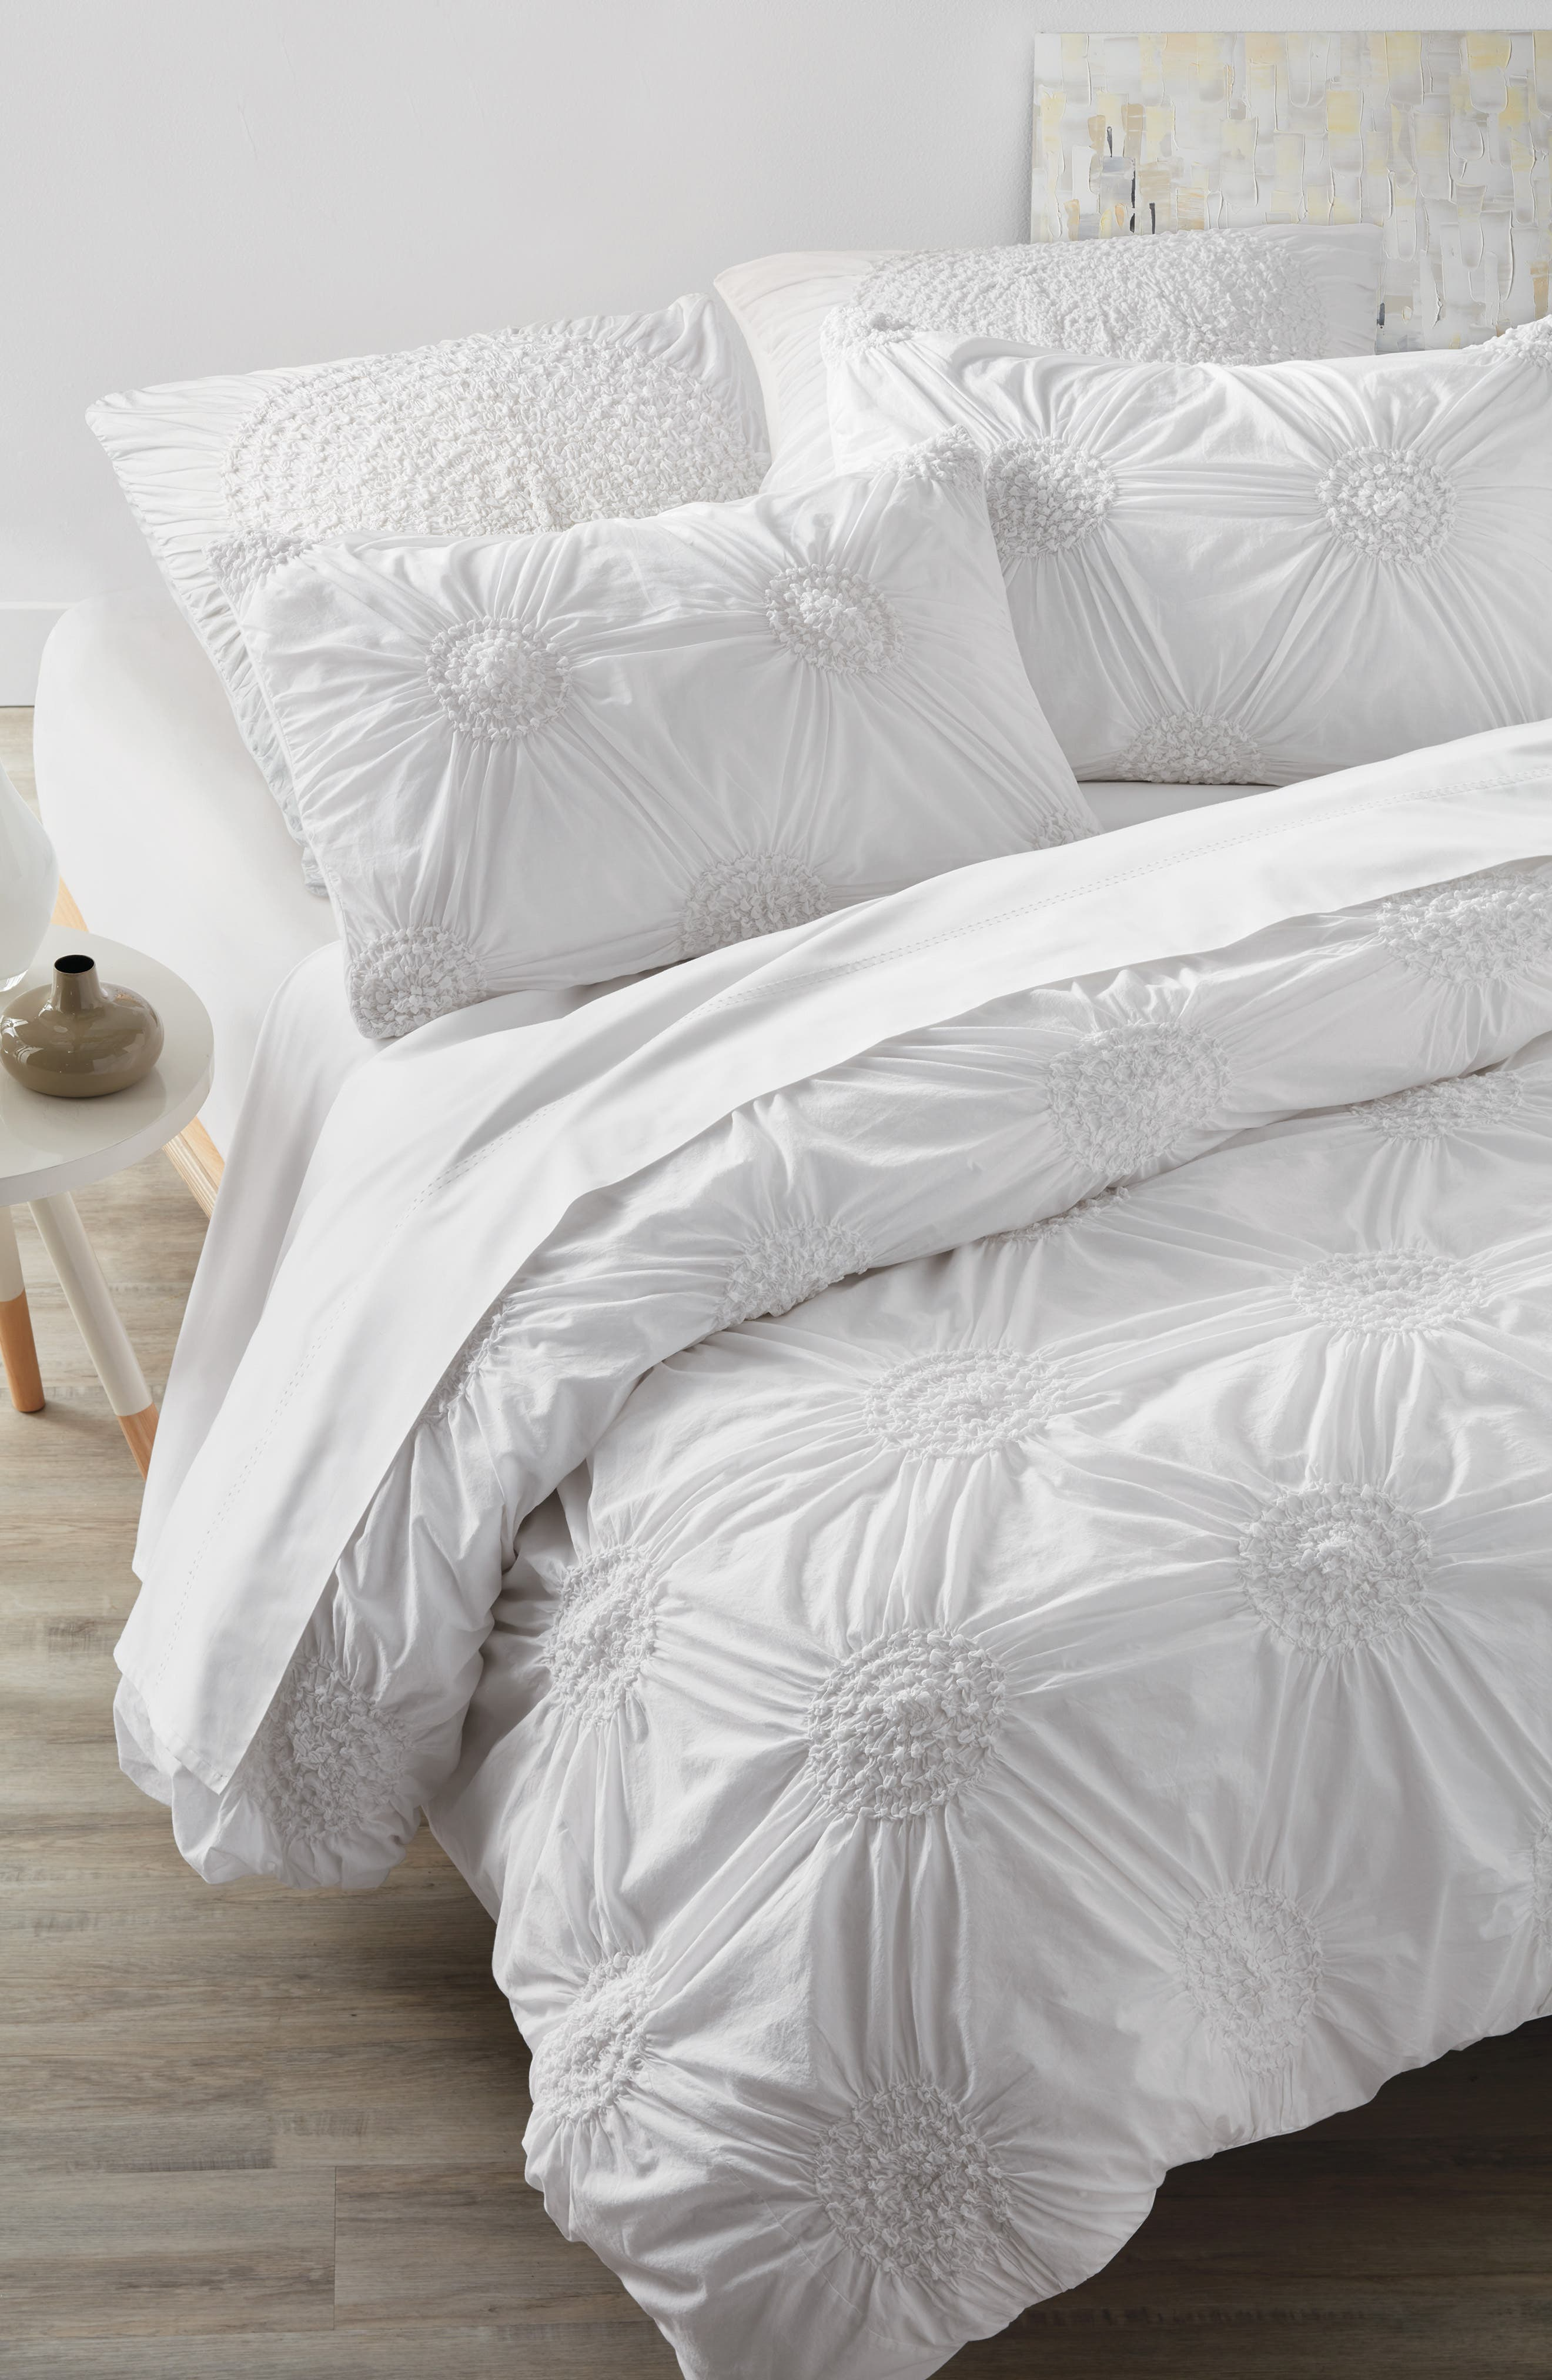 'Chloe' Duvet Cover,                             Main thumbnail 1, color,                             White